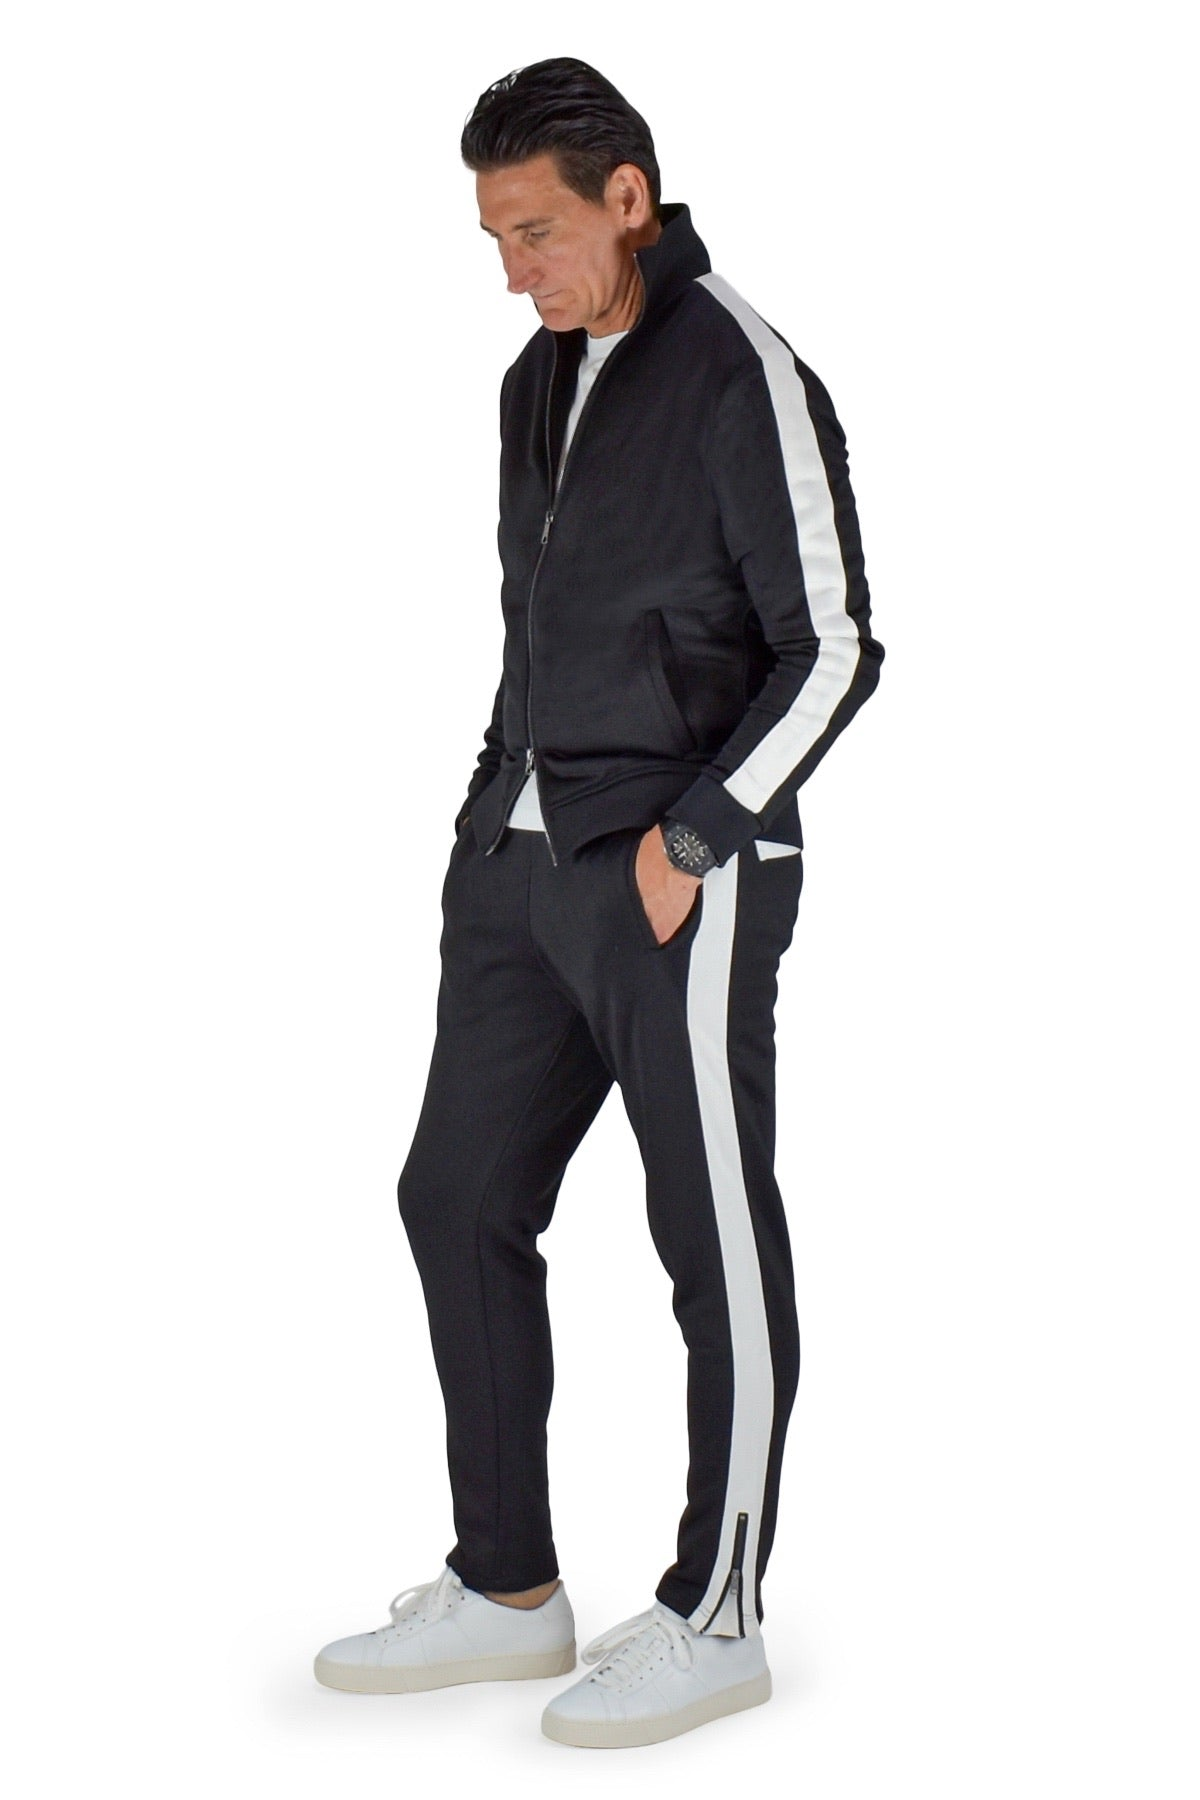 David August Tracksuit in Black with White Trim